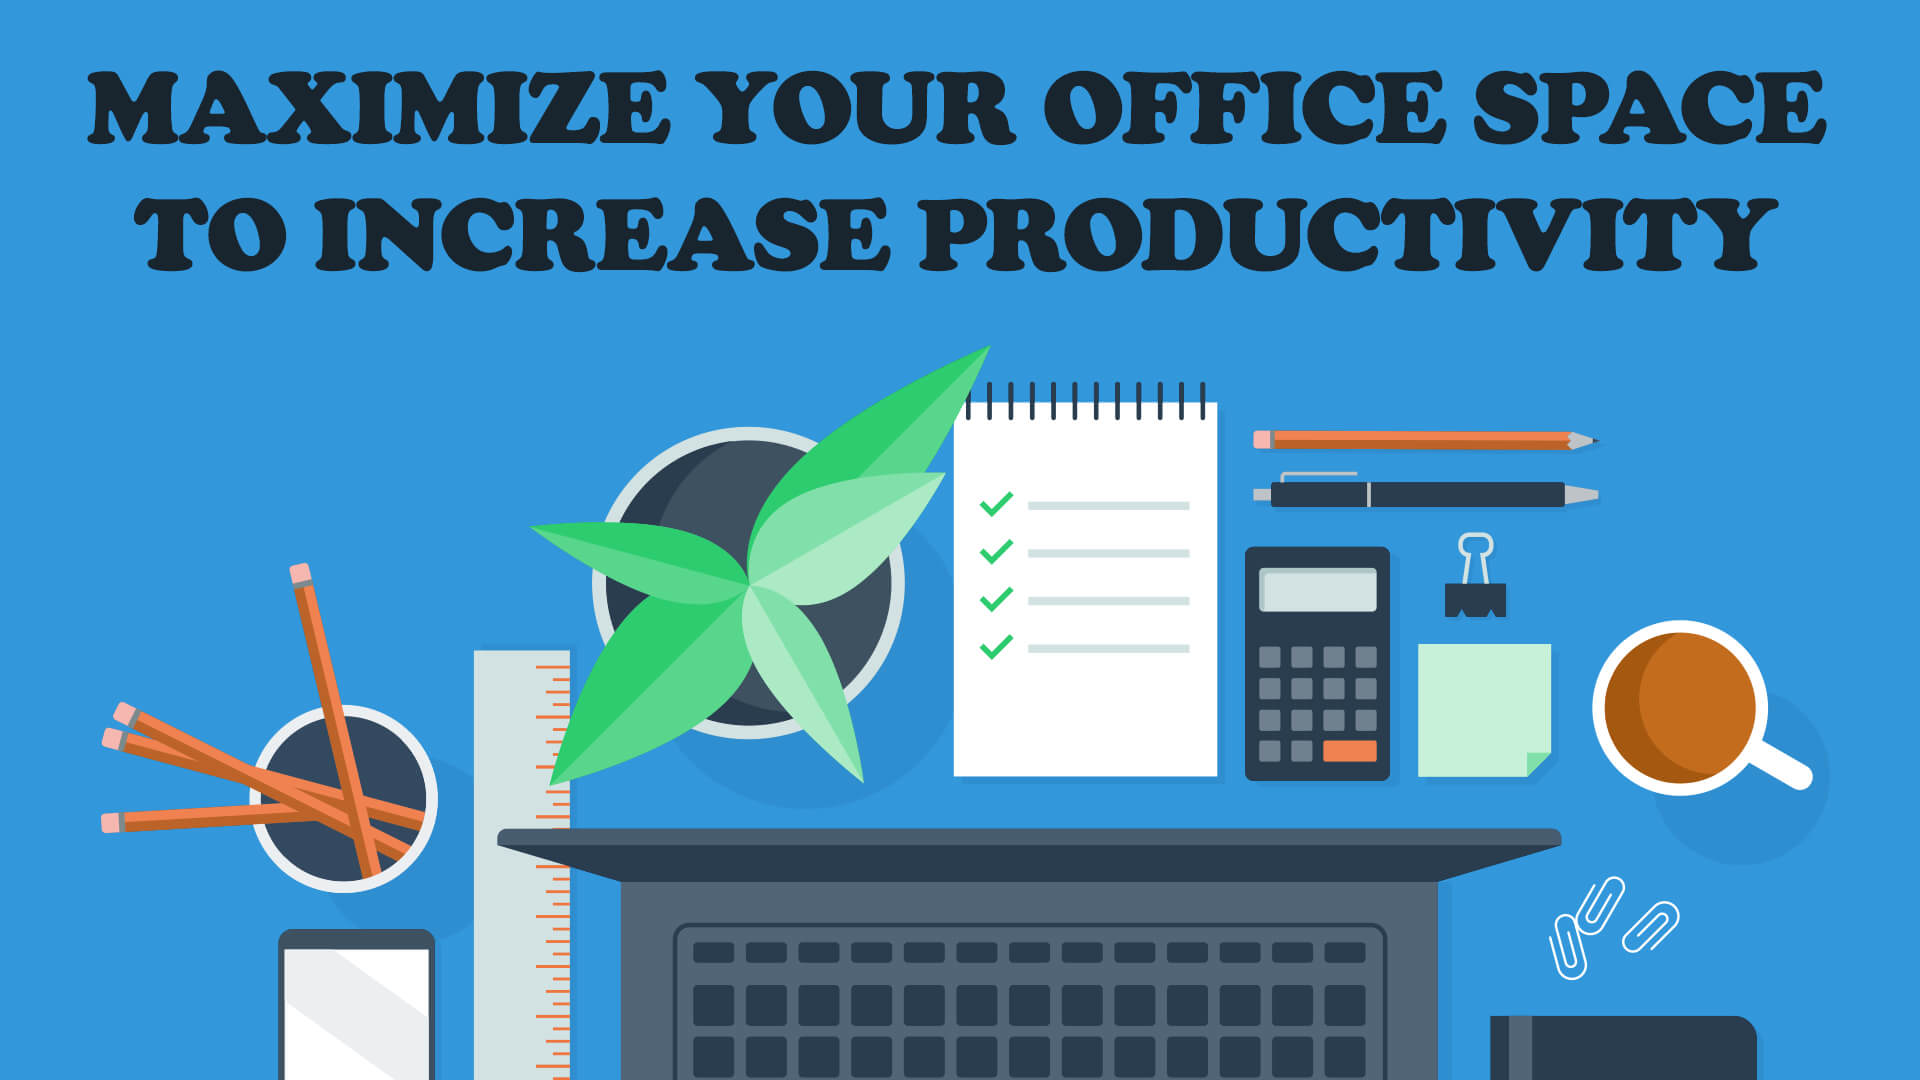 Maximize-Your-Office-Space-to-Increase-Productivity